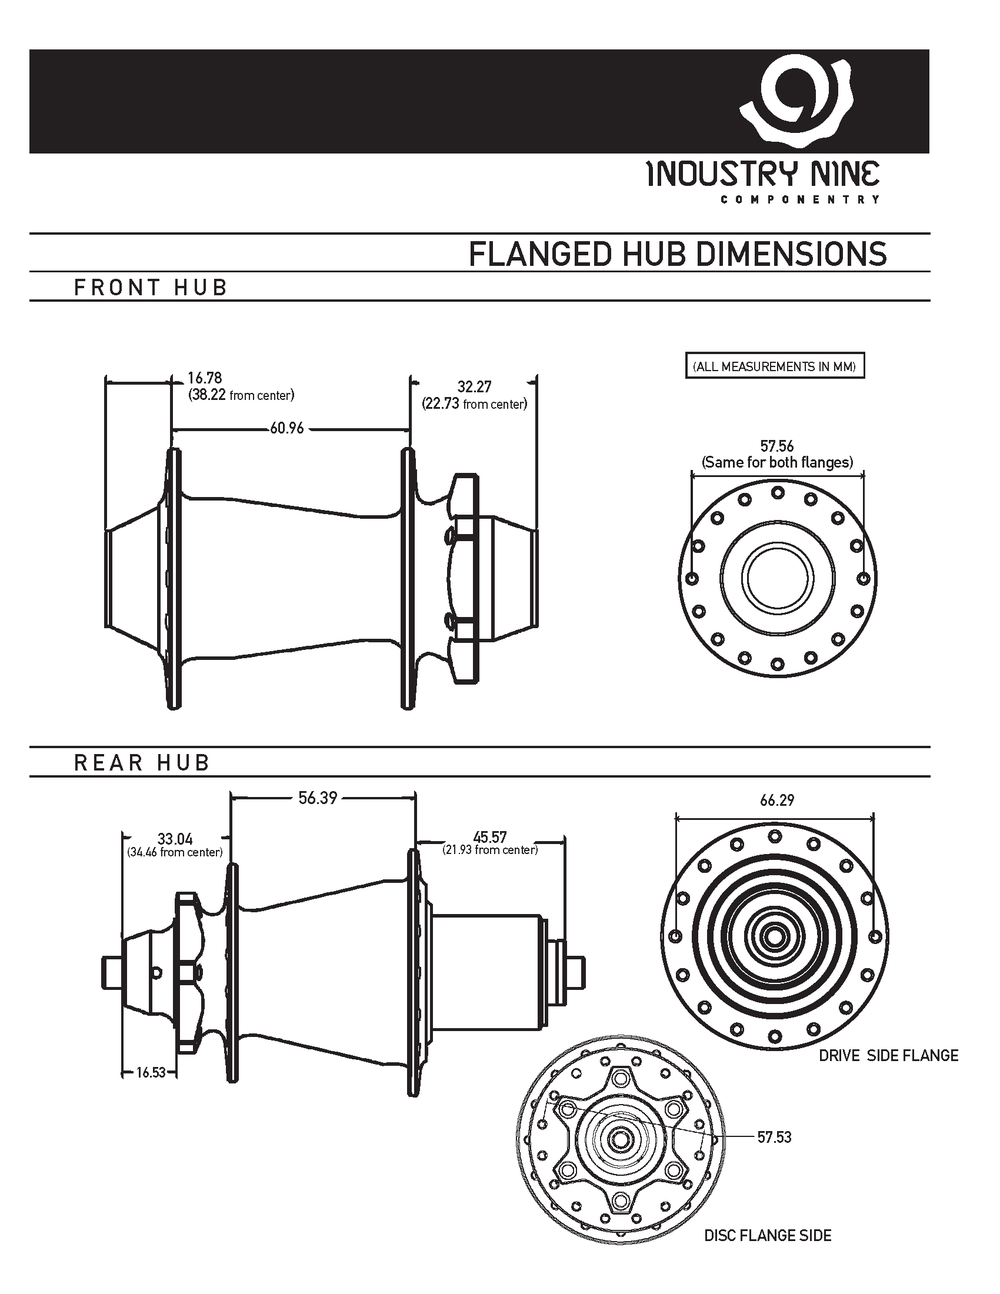 Legacy Flanged hub dimensions.png